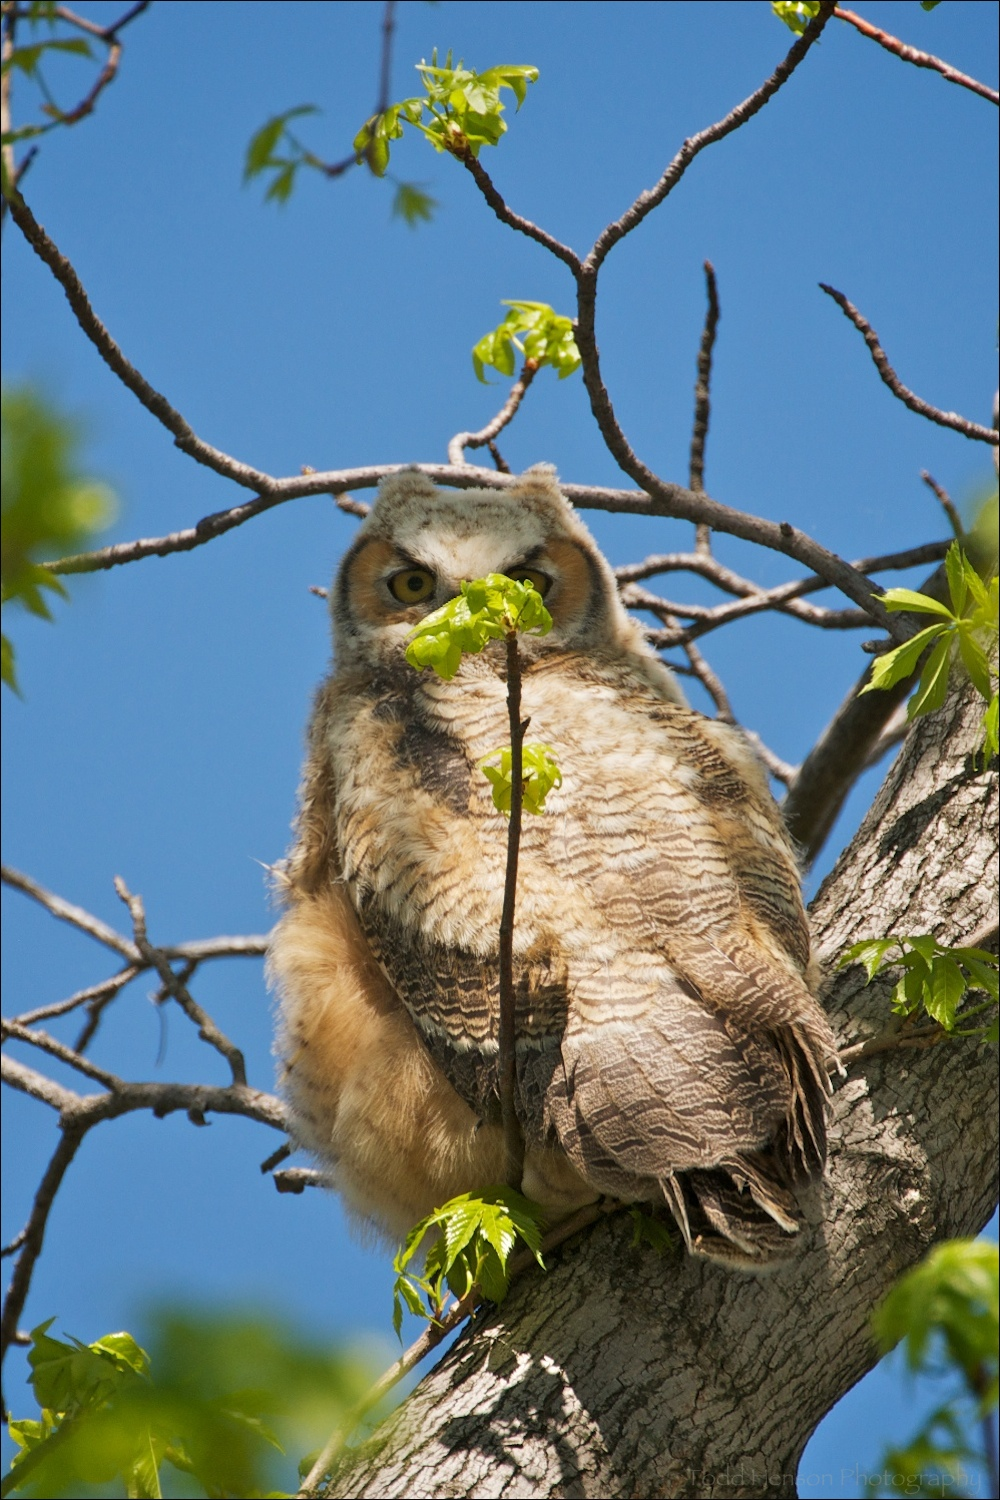 Young Great Horned Owl, recently fledged, obscured by branch. April 11, 2010